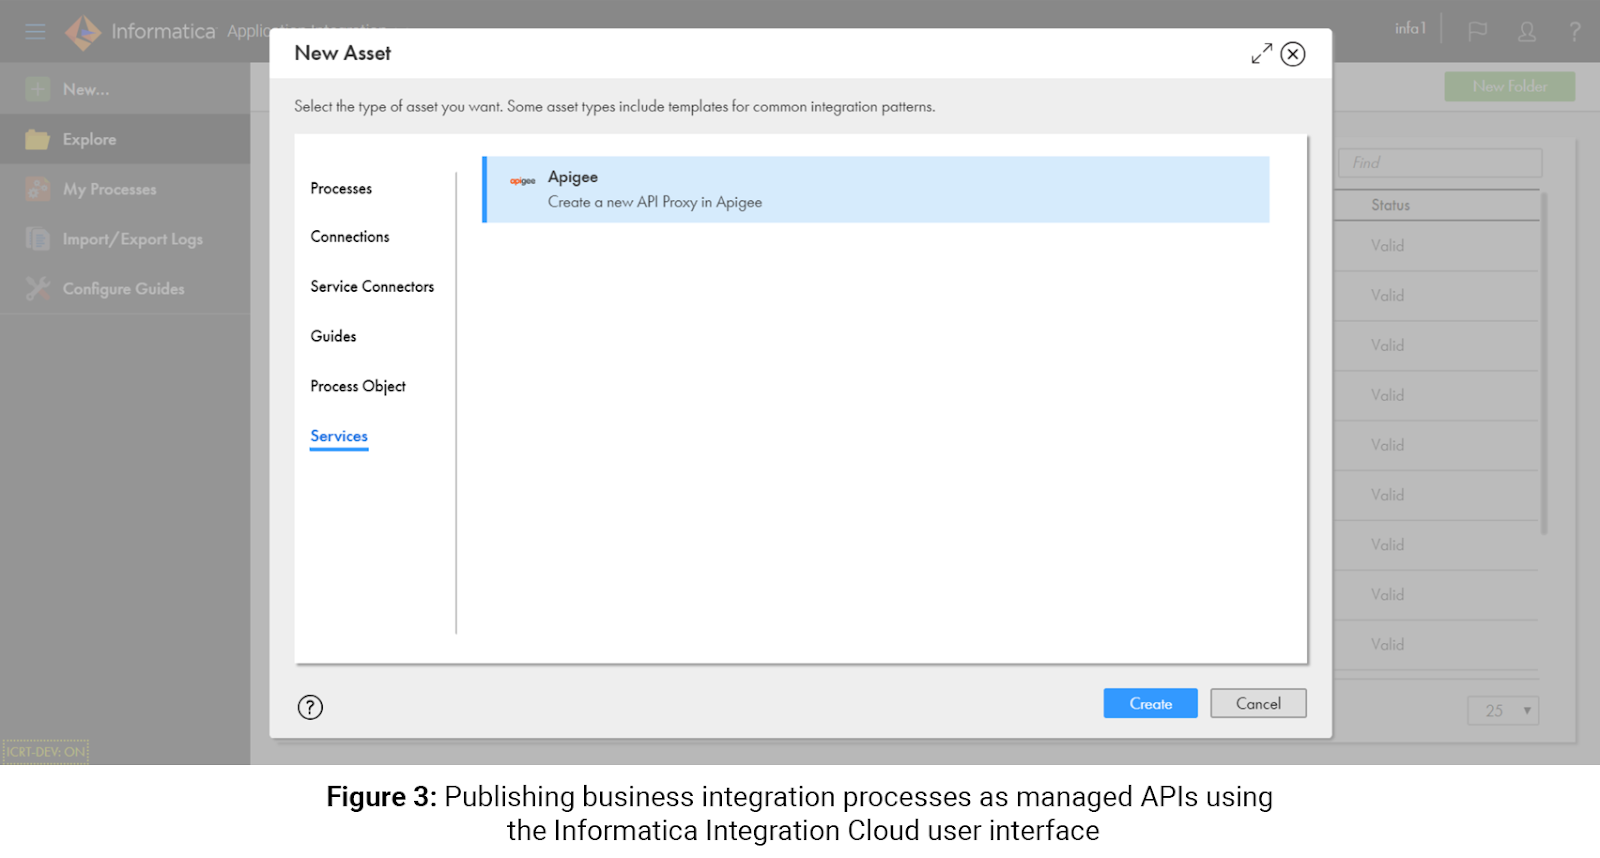 Publishing business integration processes